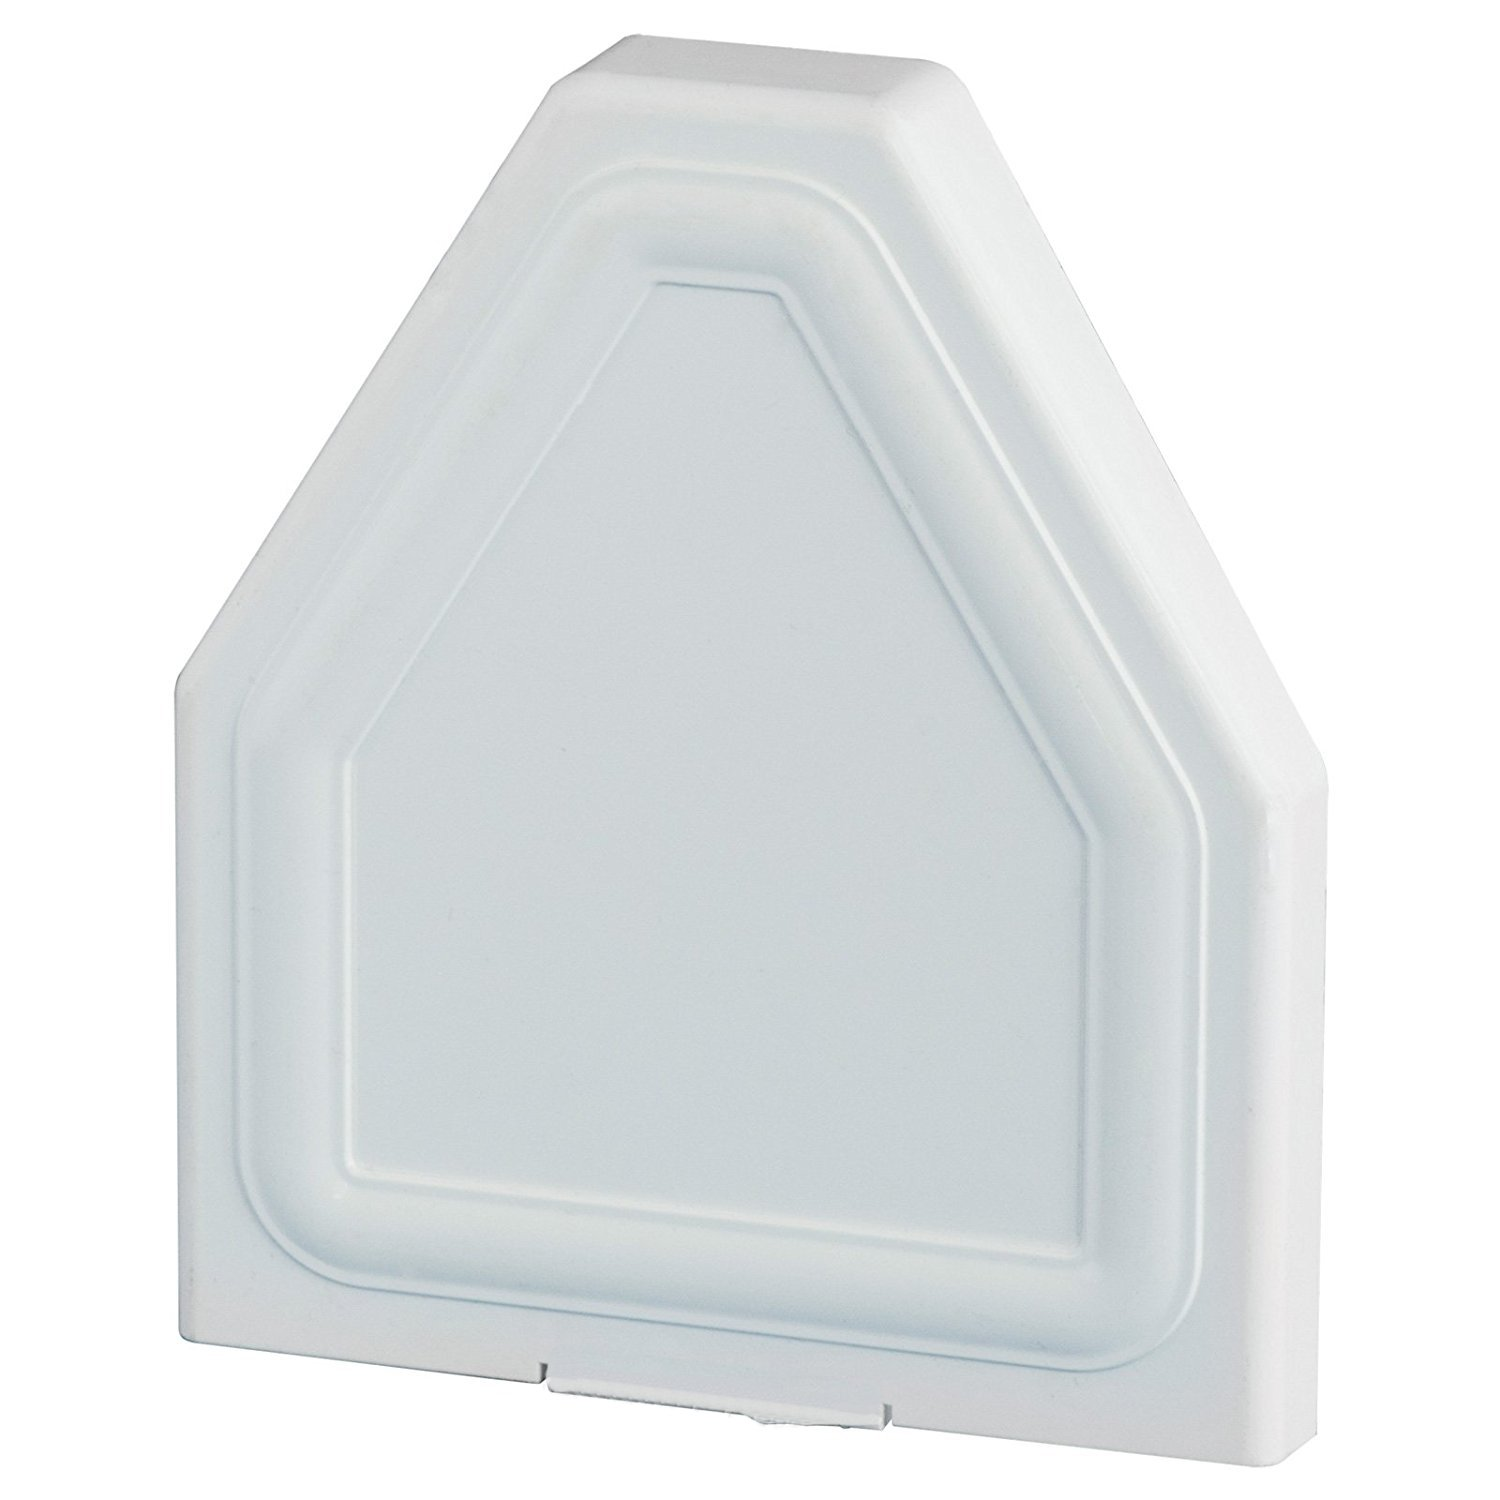 White Eurocell CRS-8201 Glazing Bar End Cap Conservatory Roof Spar Rafter End Trim